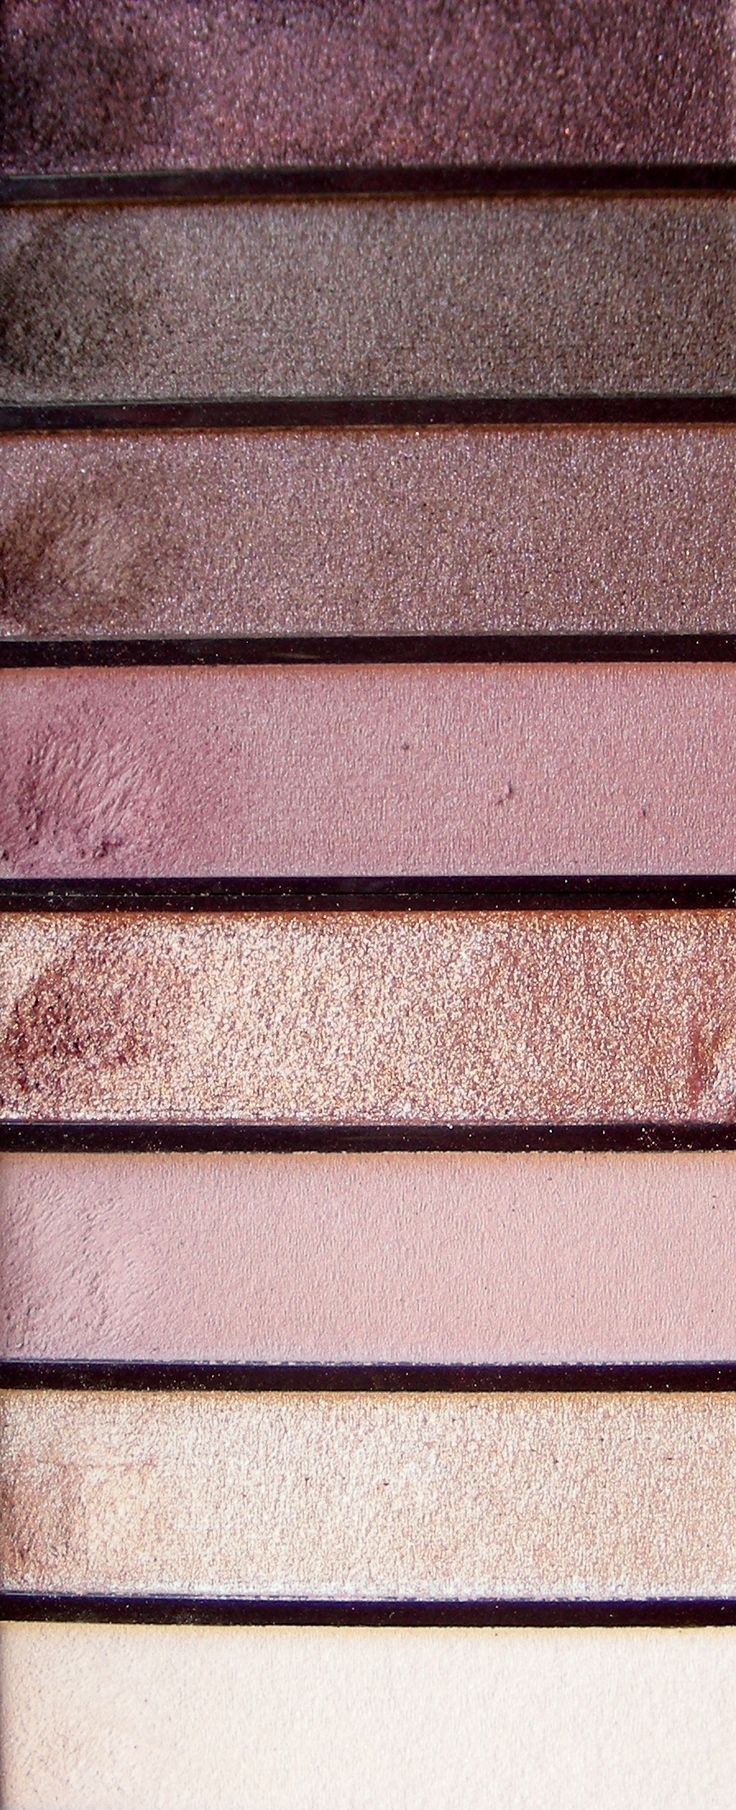 CoverGirl TruNaked Roses Eyeshadow Palette (review and swatches)